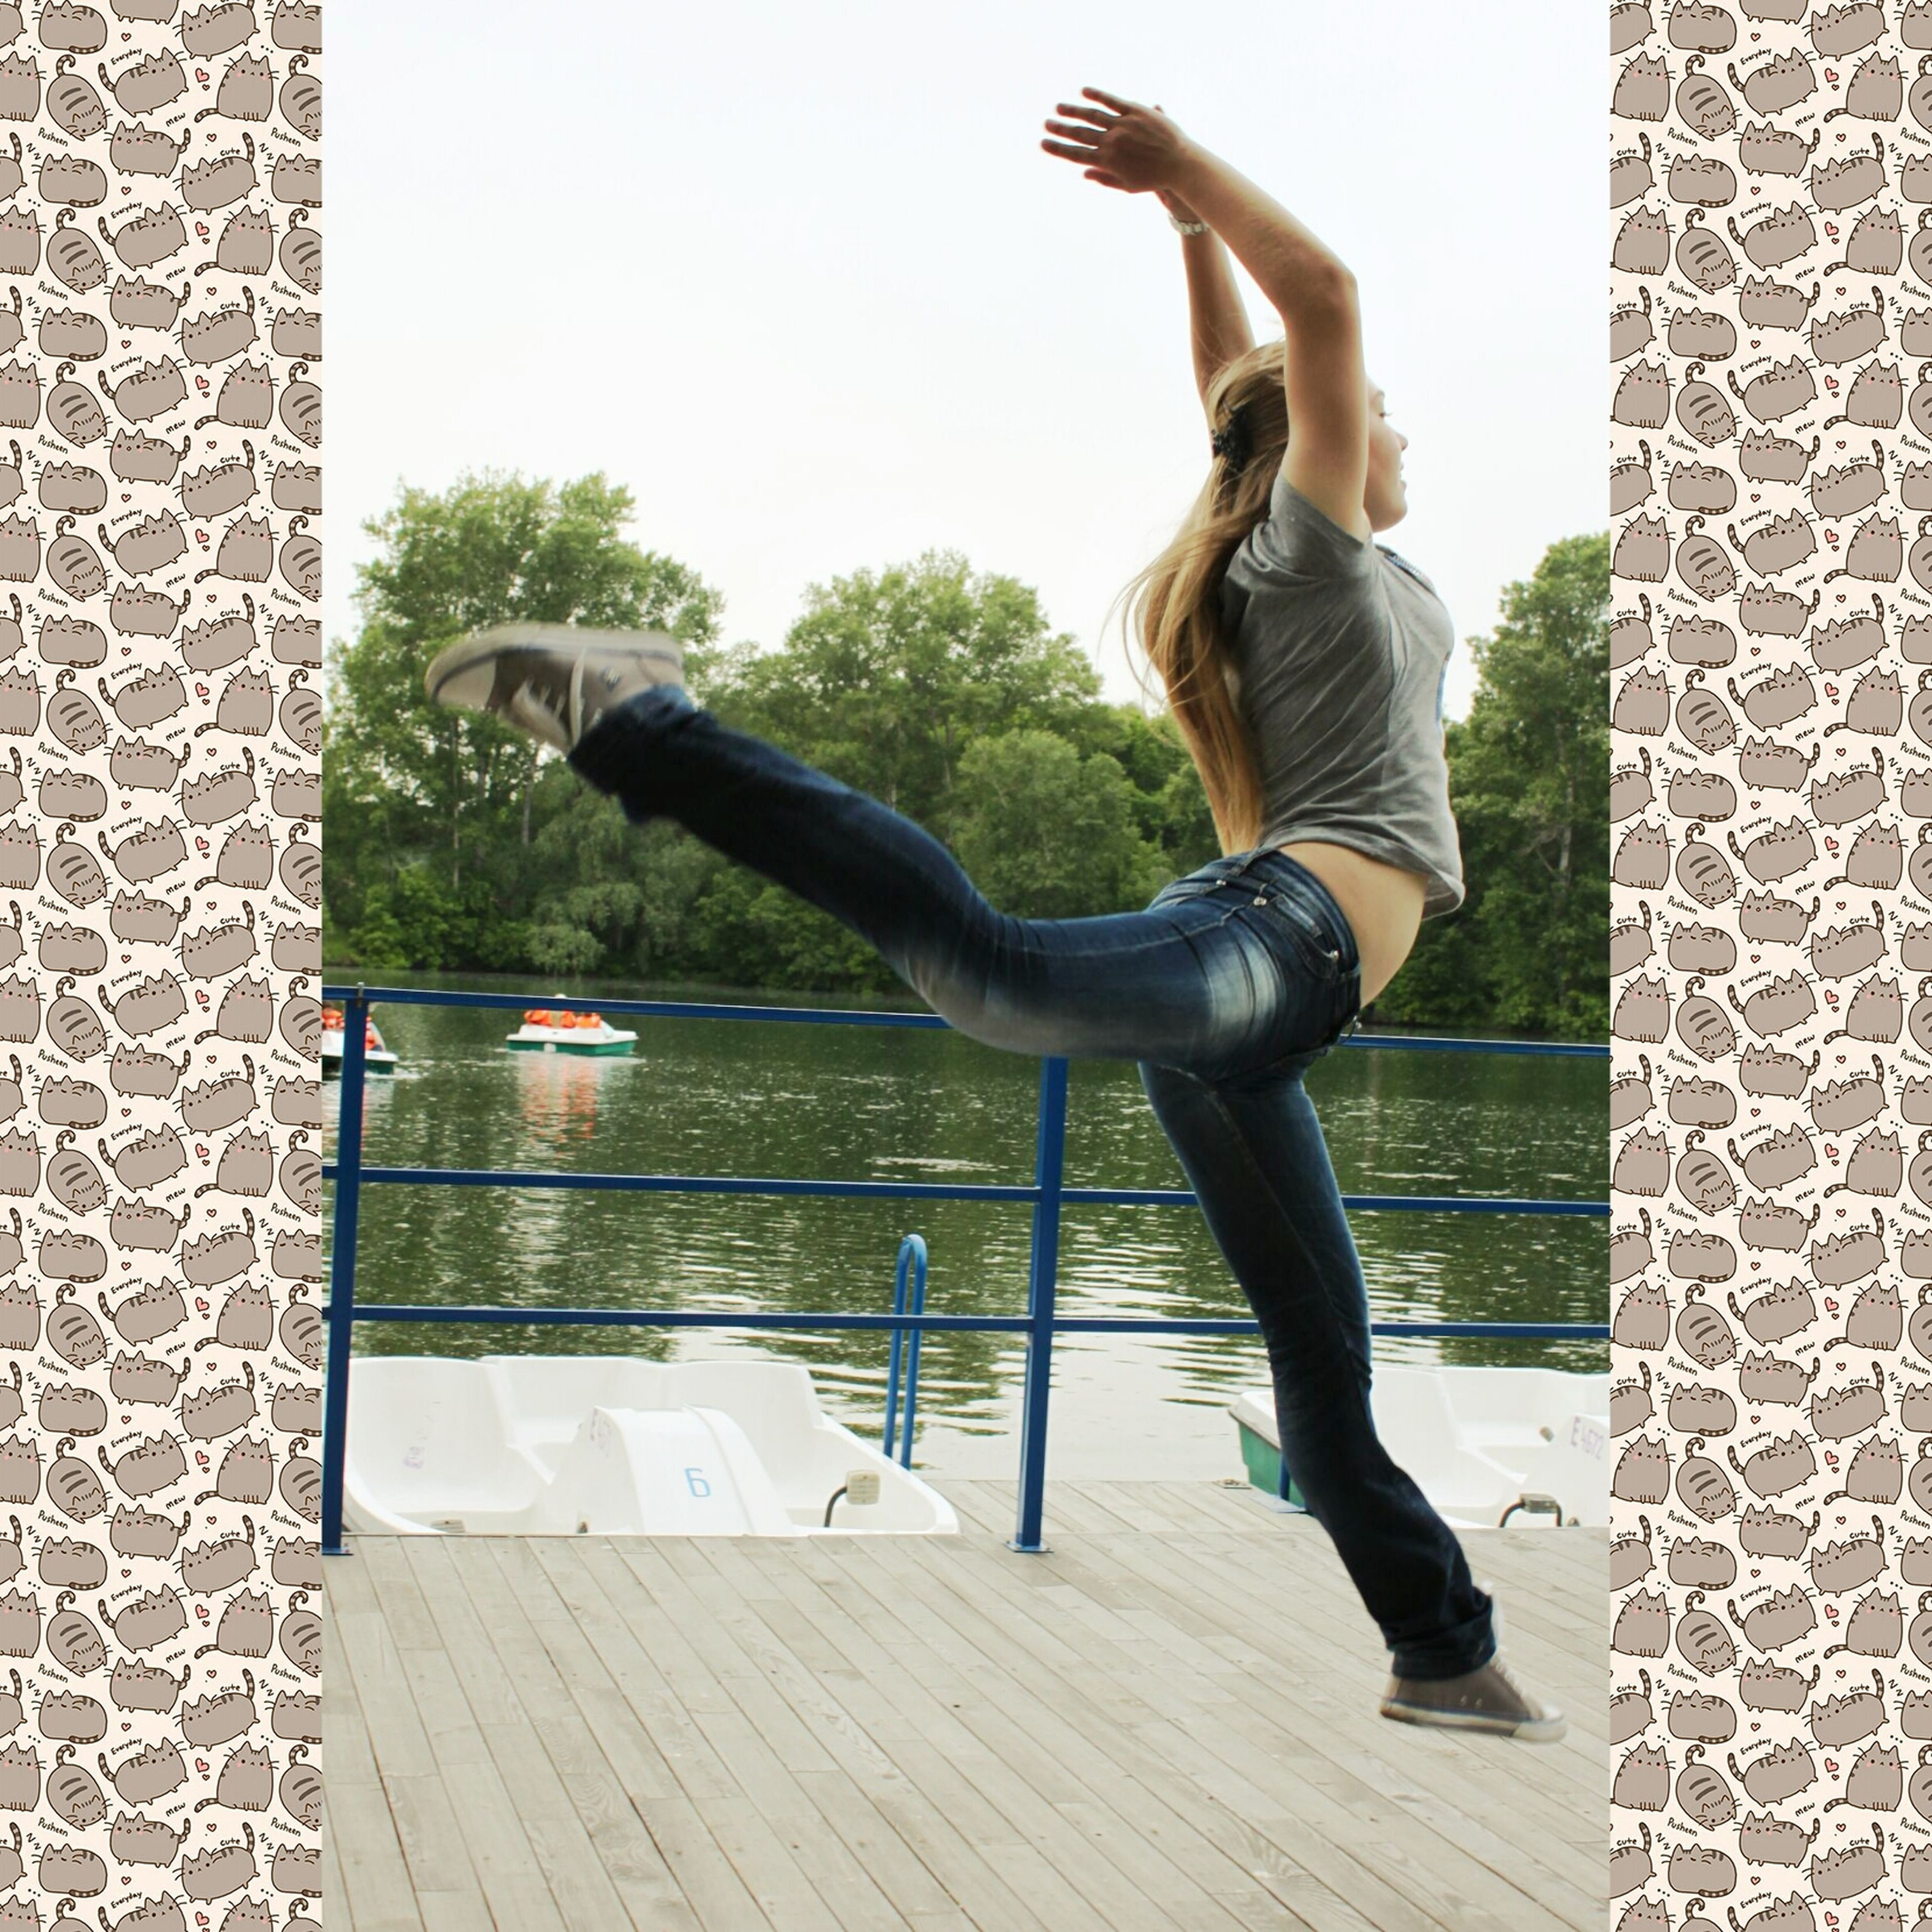 full length, lifestyles, jumping, leisure activity, mid-air, casual clothing, water, side view, fun, enjoyment, day, motion, childhood, standing, outdoors, balance, sunlight, carefree